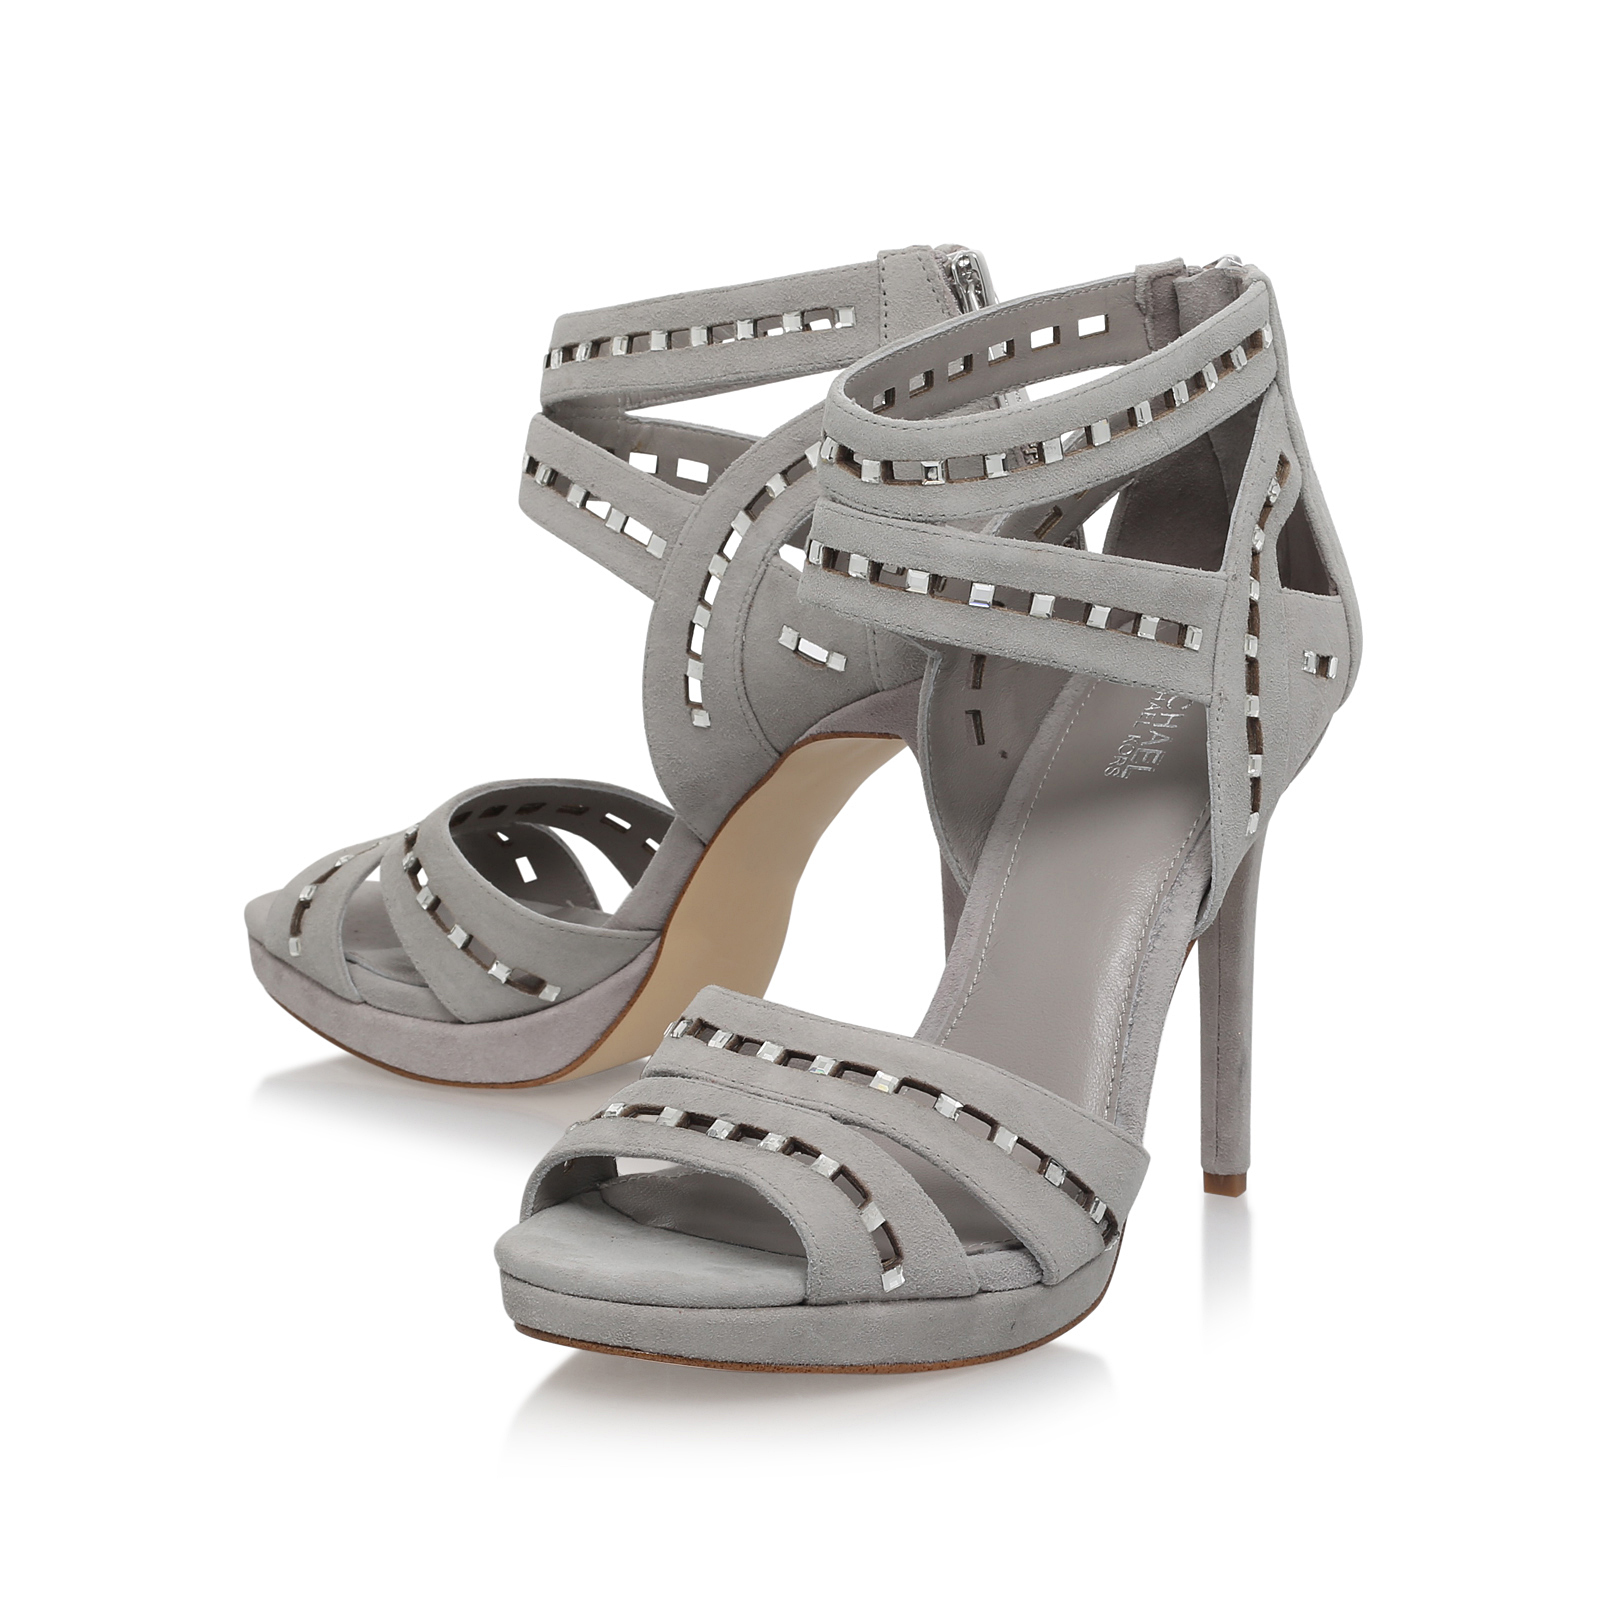 db5e8459ed66 HONEY SANDAL Michael Michael Kors Honey Sandal Light Grey Suede ...